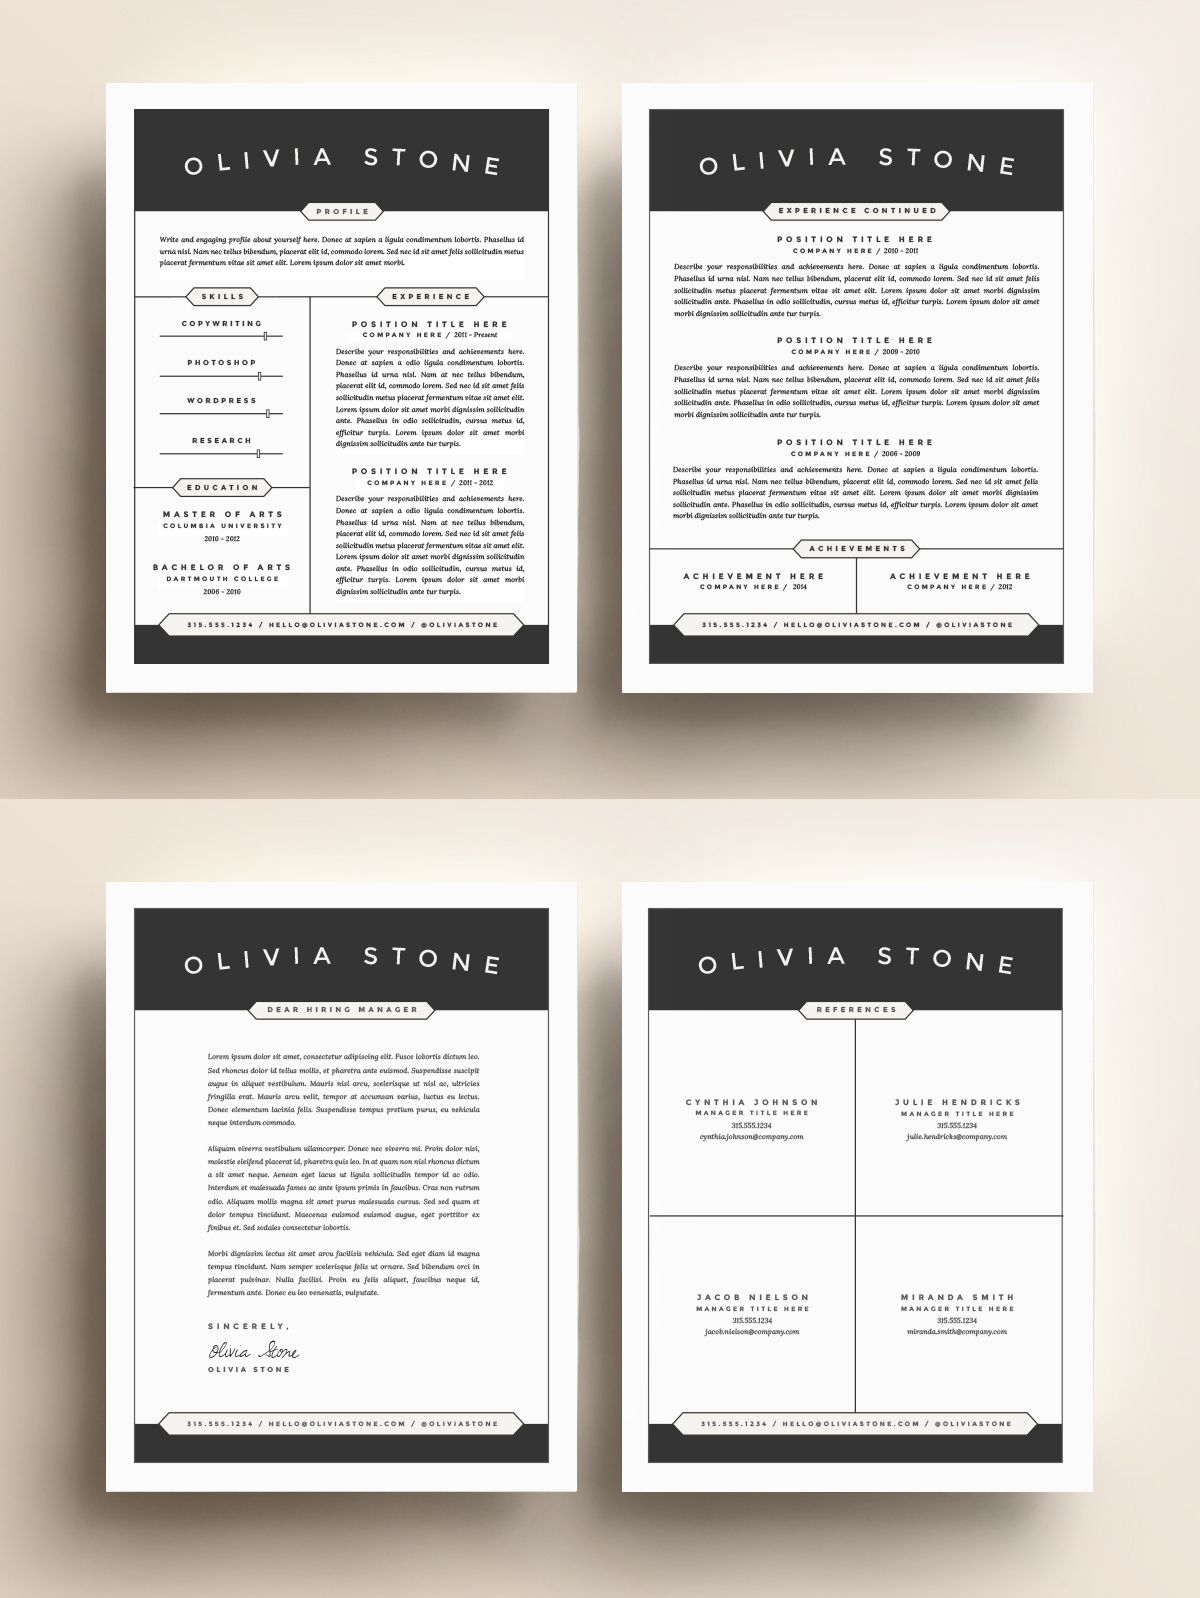 Awesome modern resume / CV template without the unnecessary fluff ...